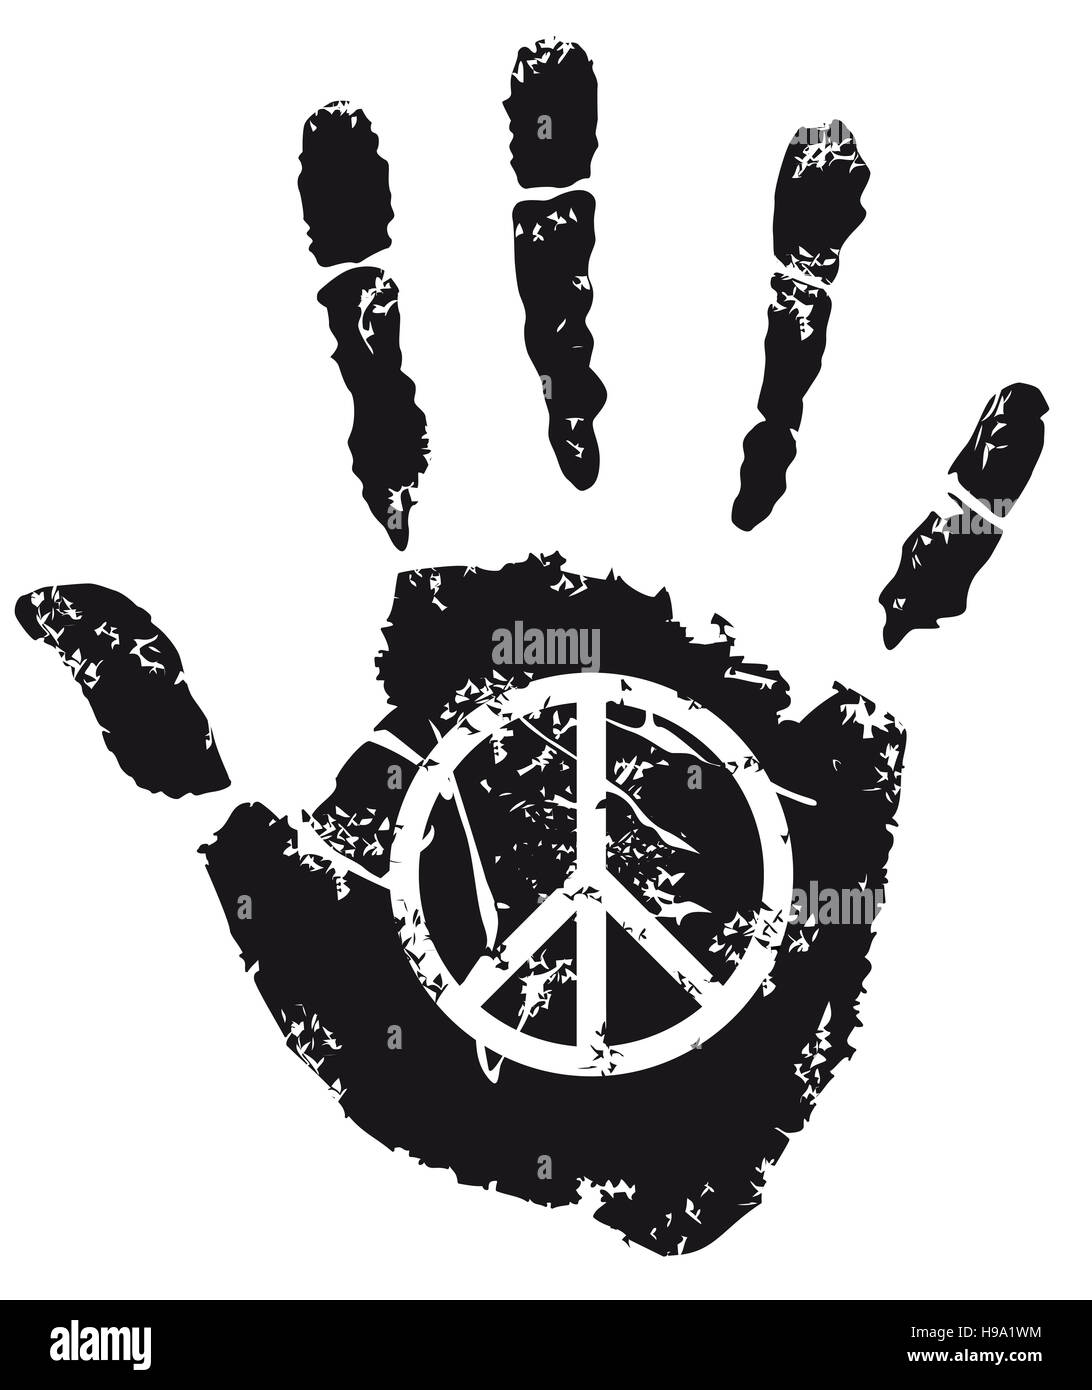 peace Sign - Stock Image